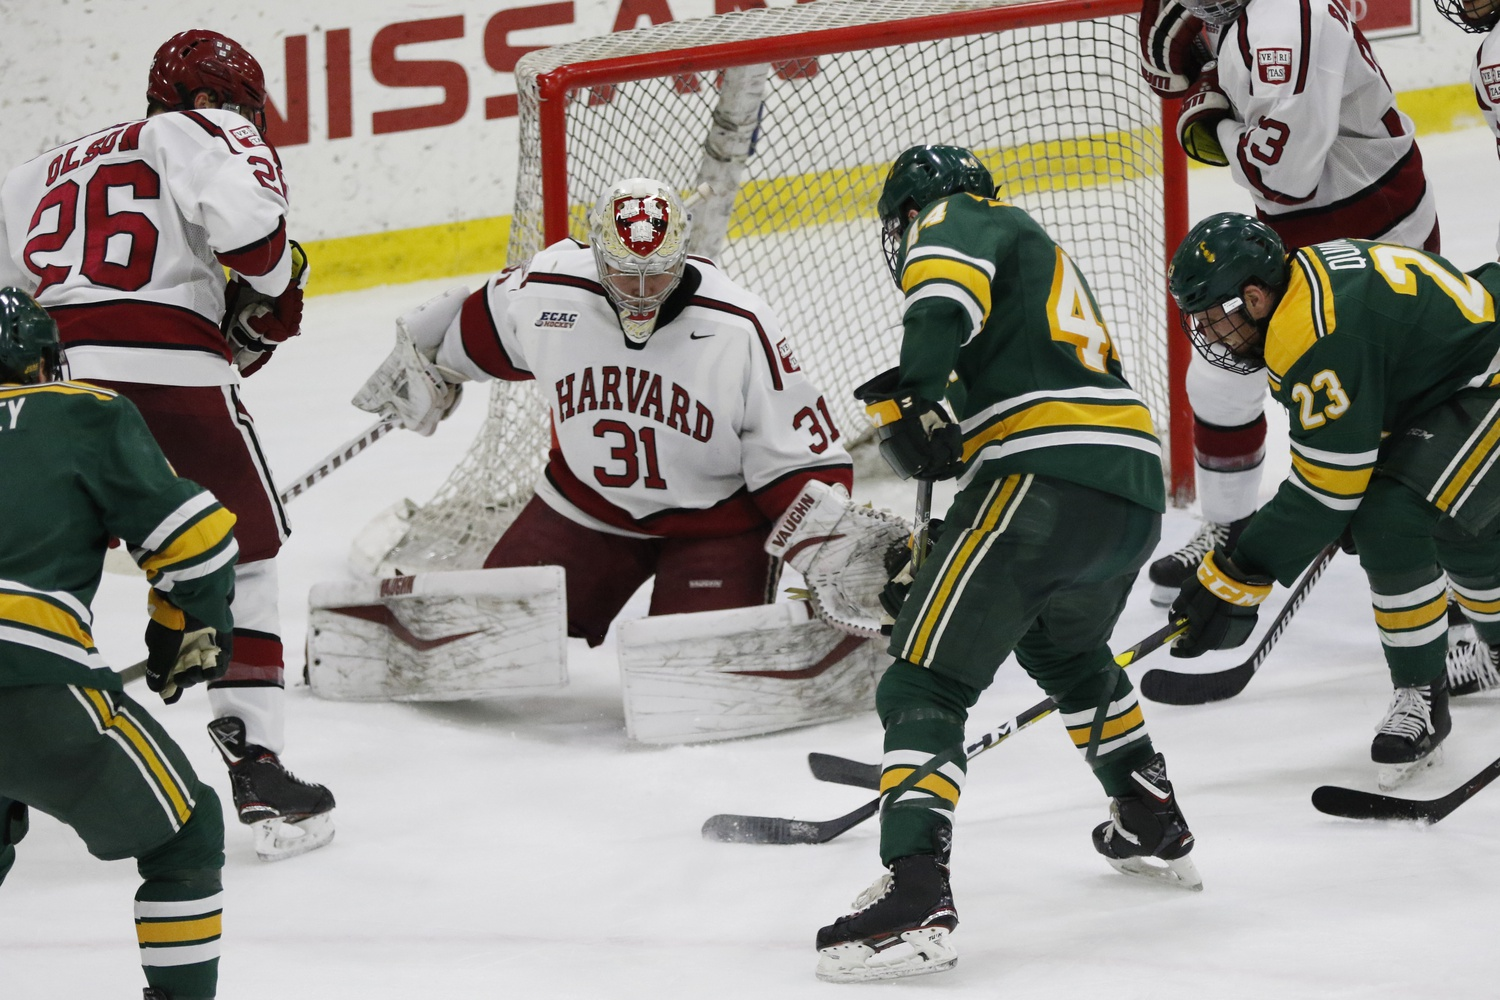 Harvard senior net-minder Michael Lackey left the crease in the game's second period after taking contact on a net-front collision.